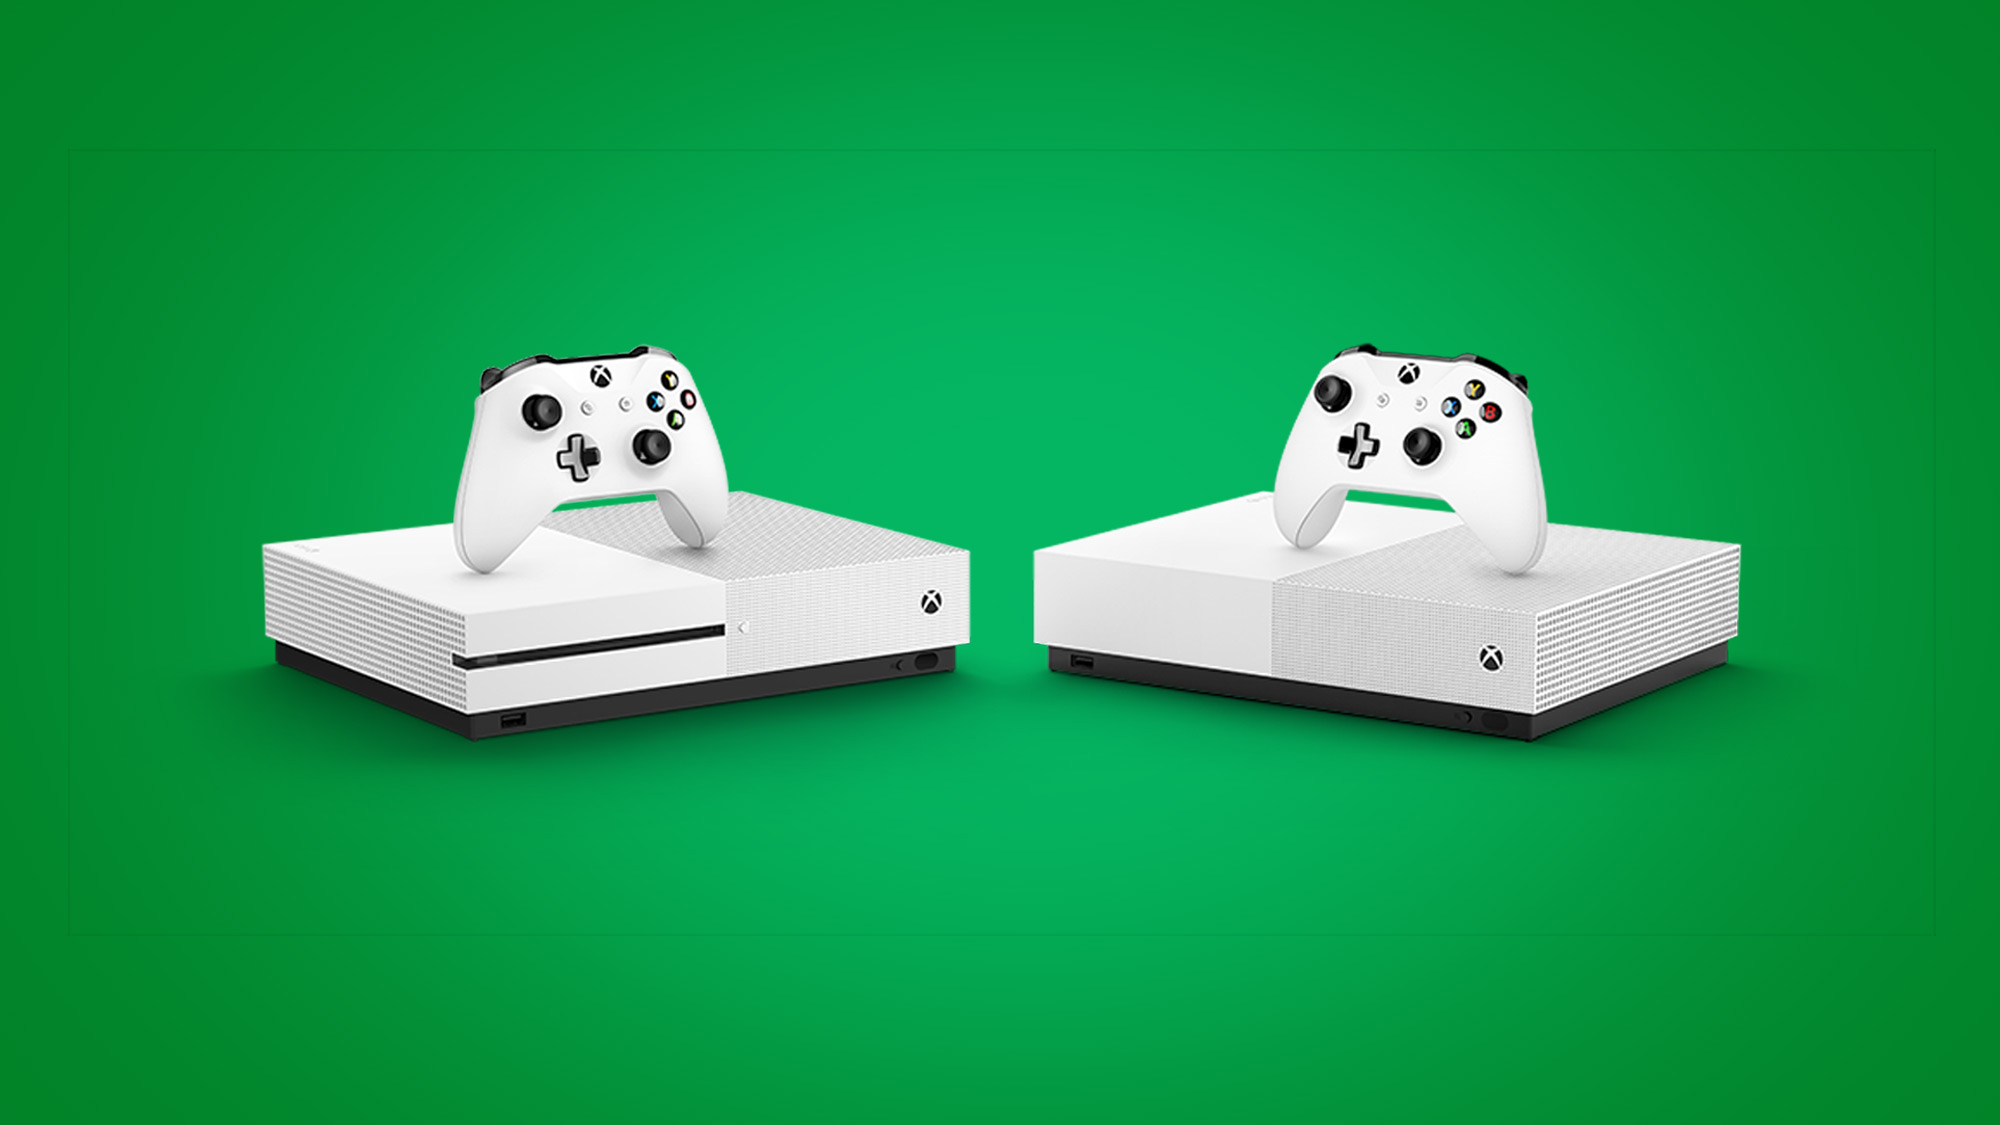 The cheapest Xbox One bundle deals and sale prices for Boxing Day sales